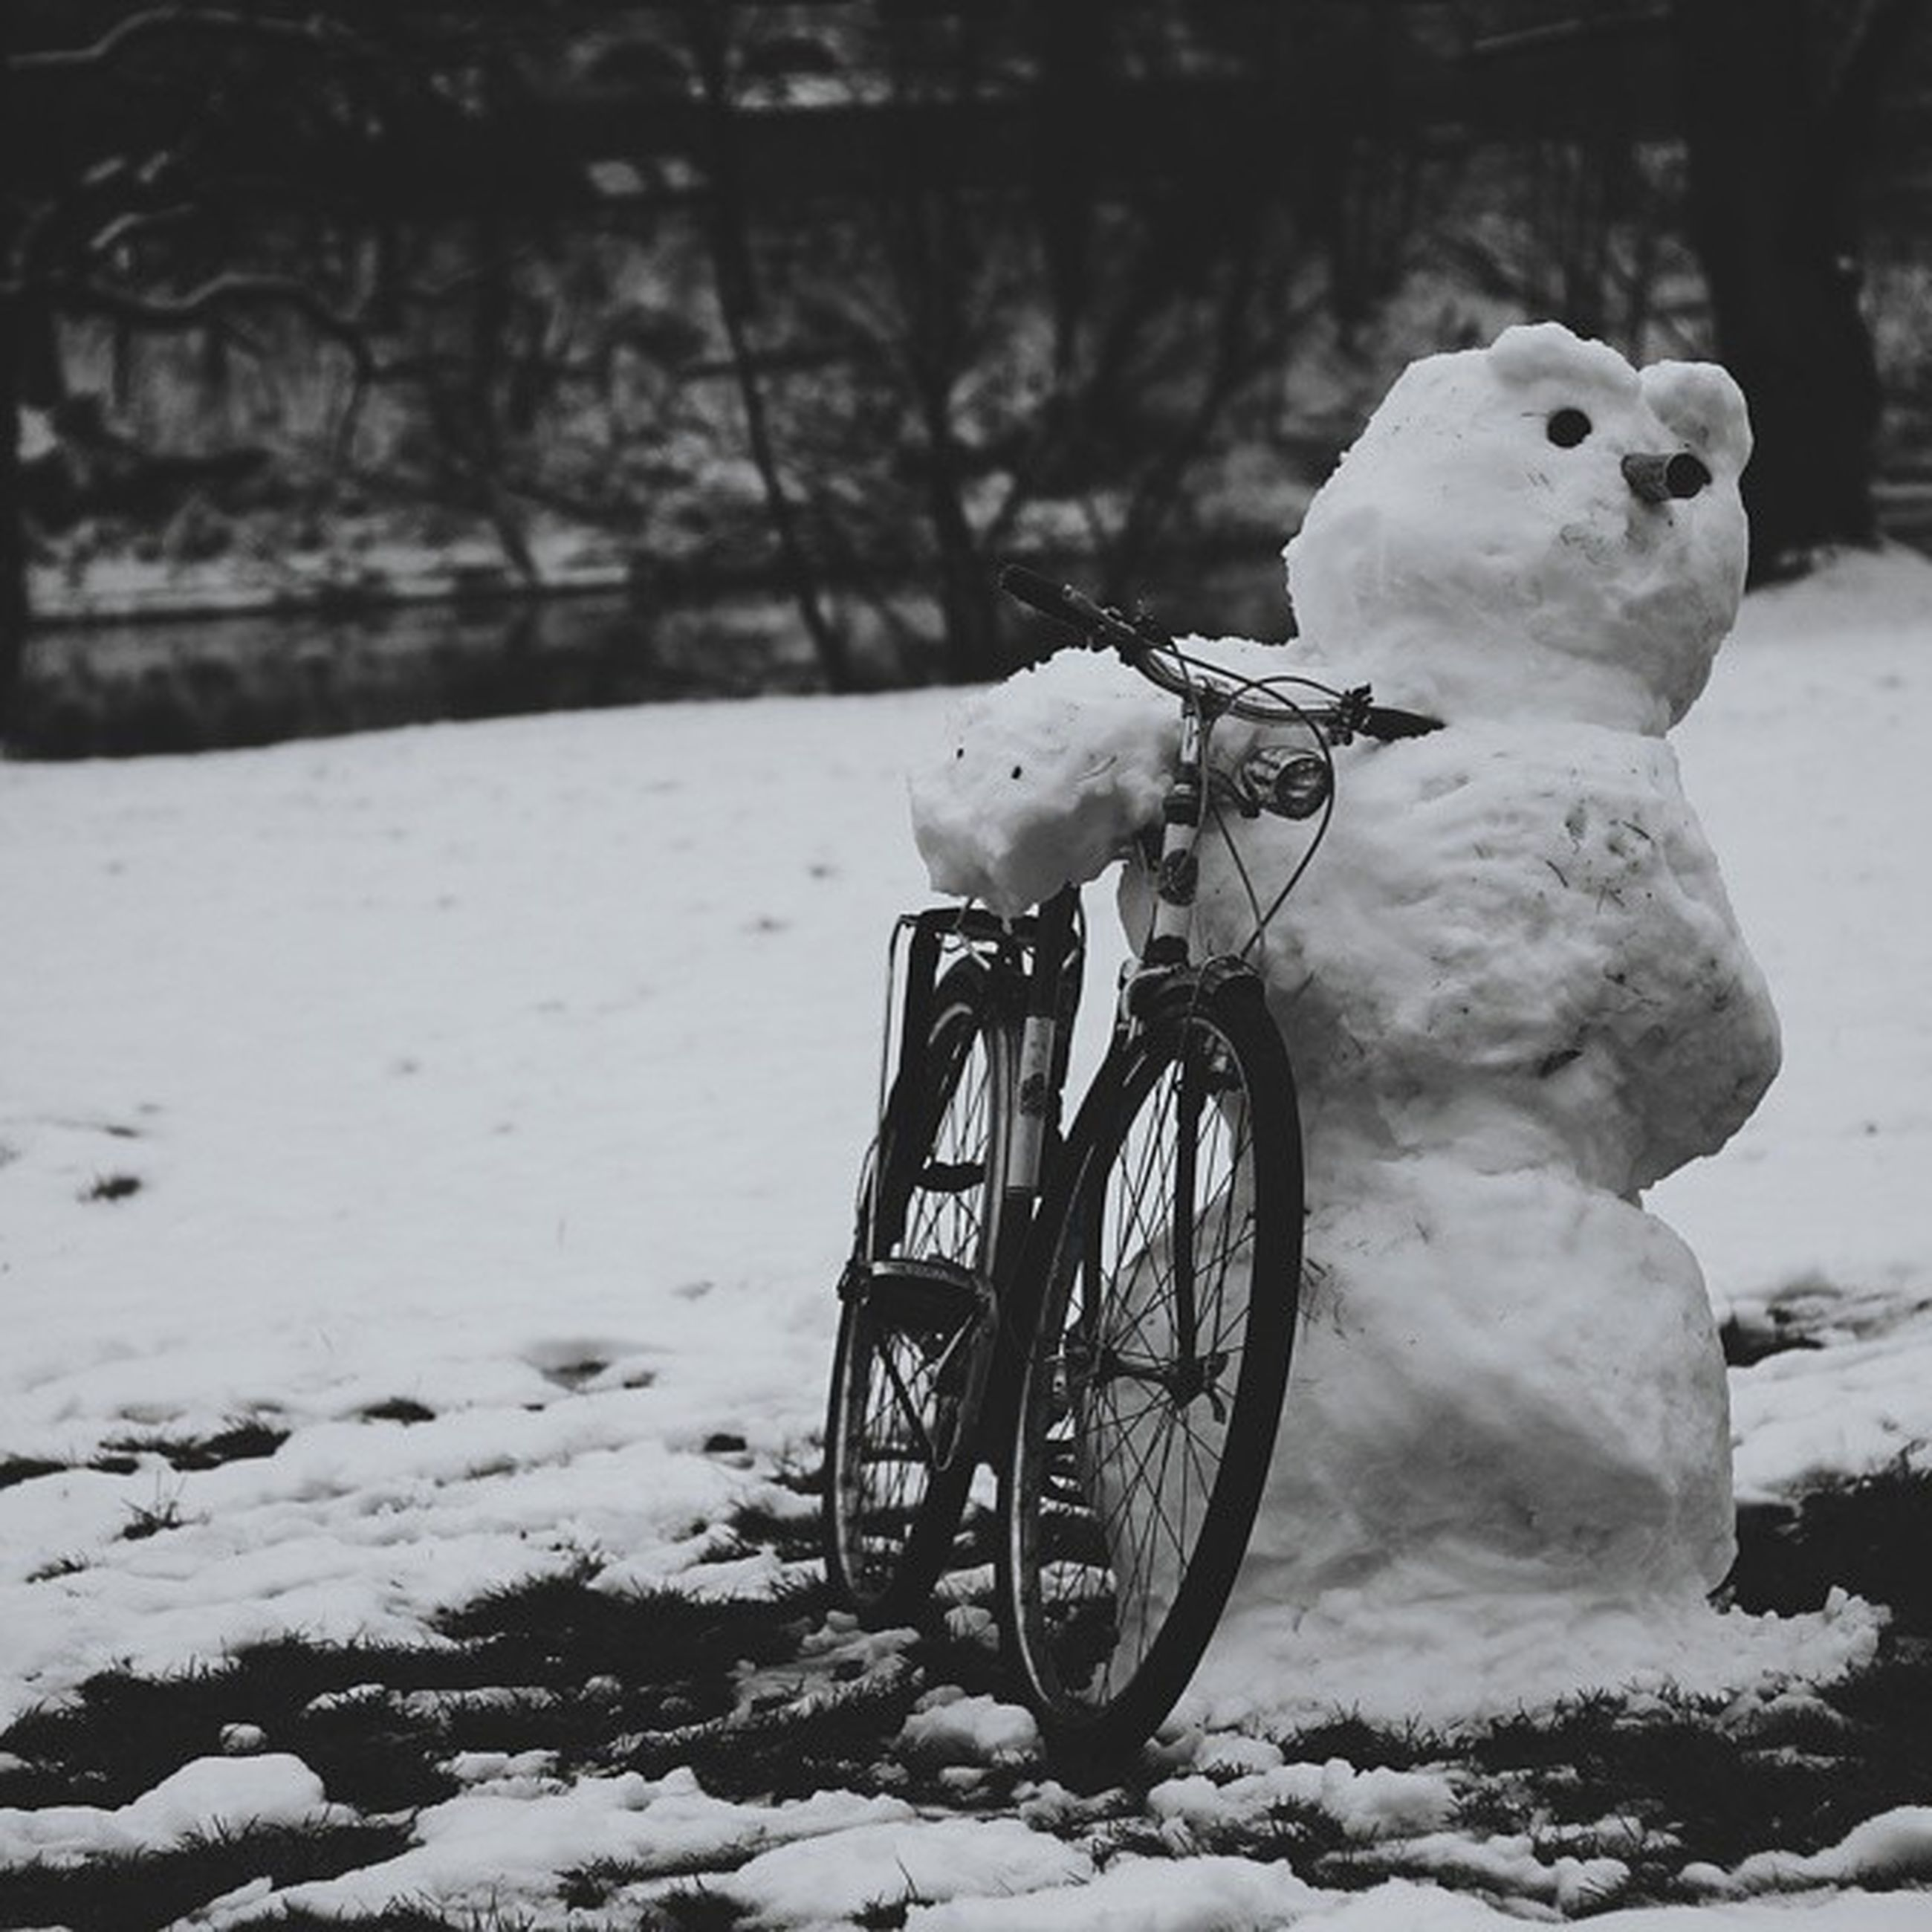 mode of transport, transportation, land vehicle, bicycle, stationary, snow, winter, parking, wheel, parked, cold temperature, white color, outdoors, weather, no people, day, abandoned, side view, tire, street